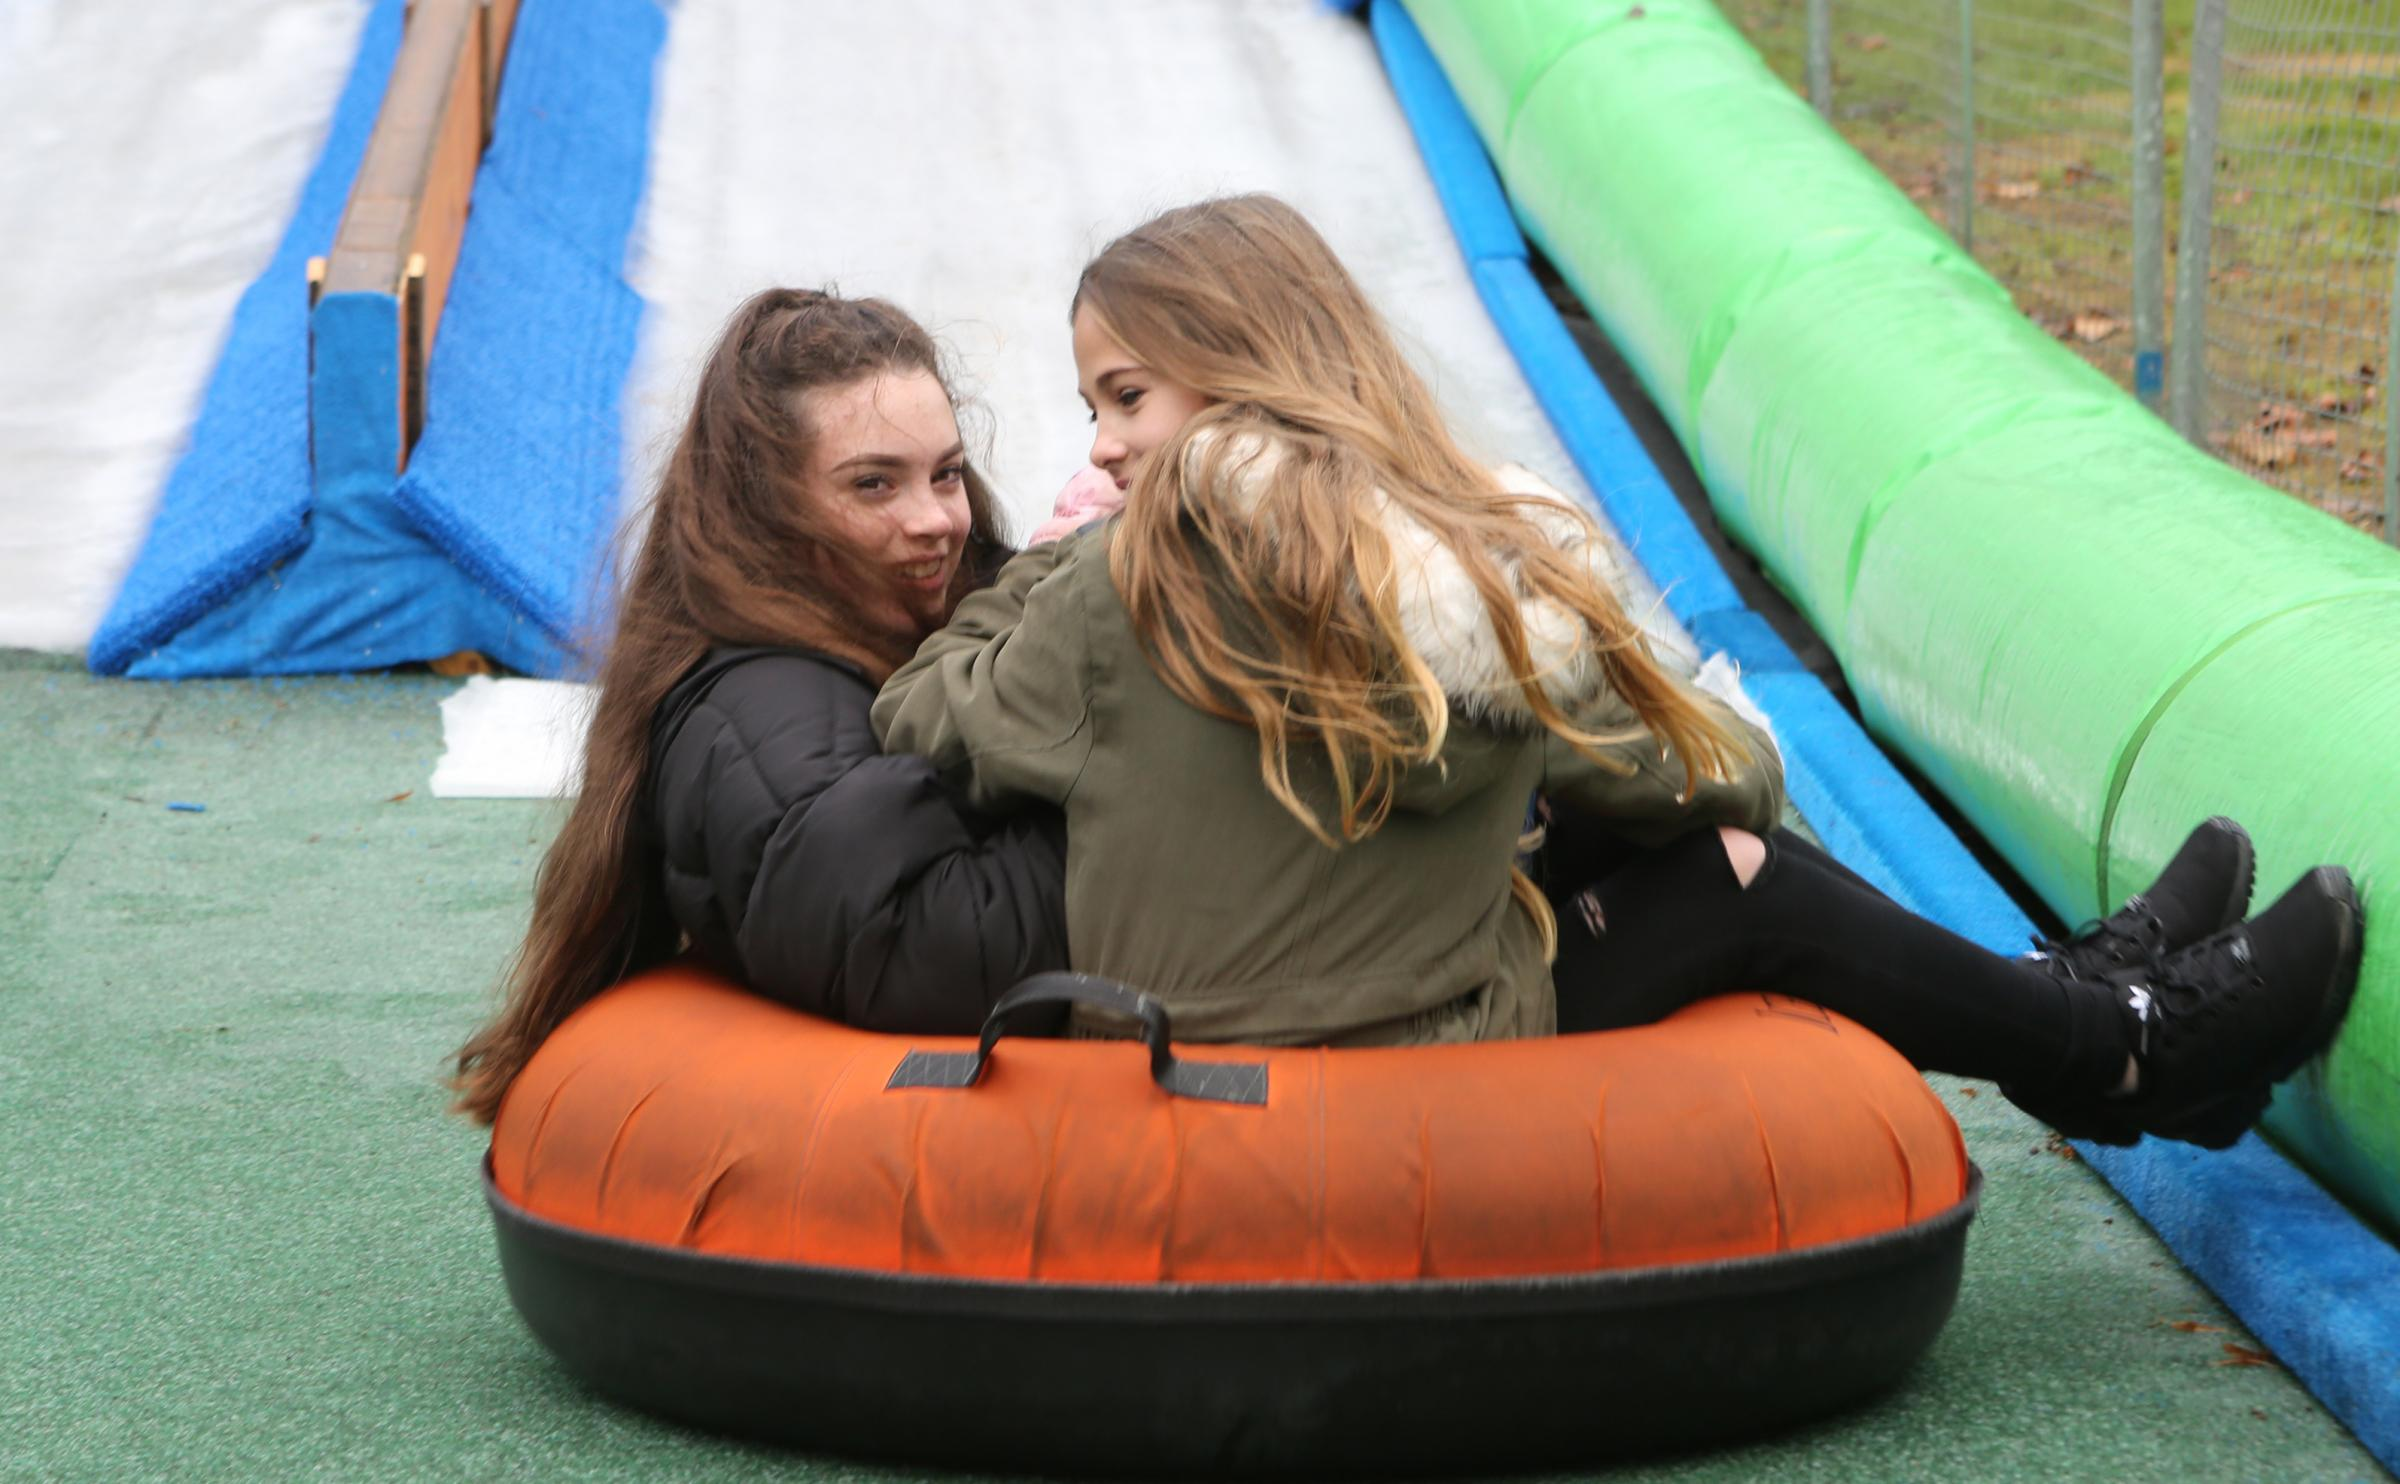 Ellie Farquhar and Alannah Girling at the slide's launch